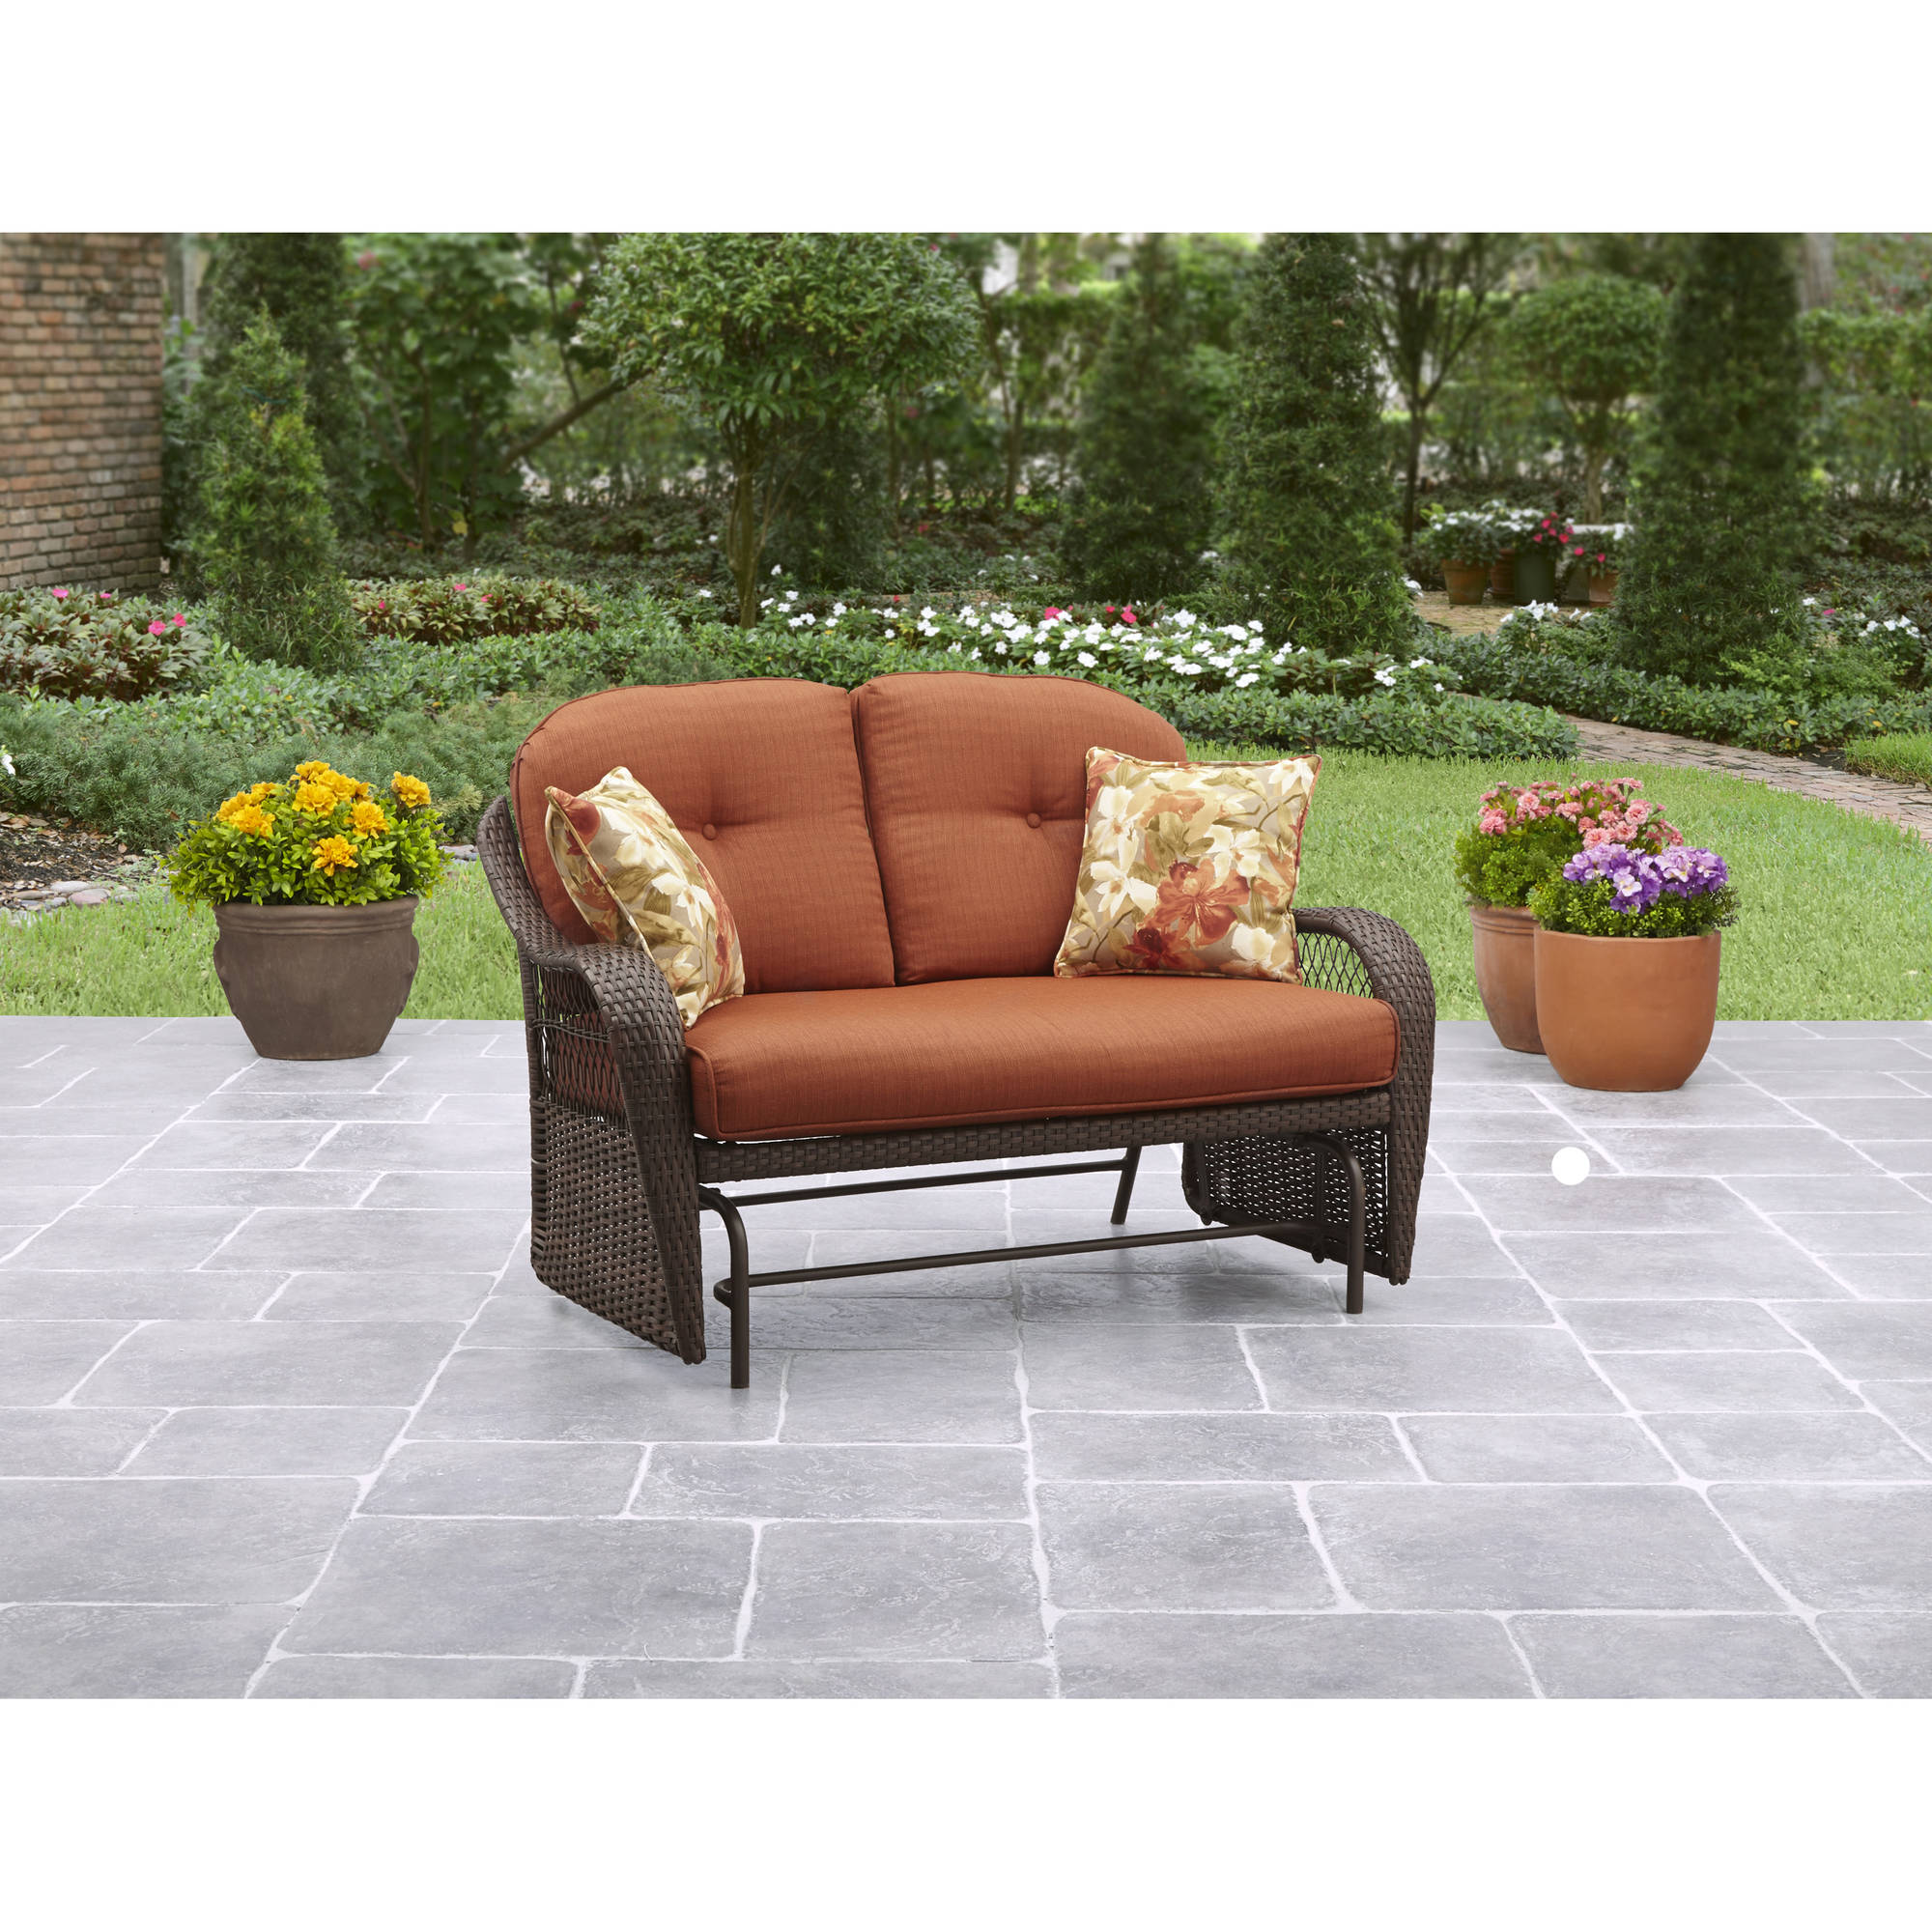 Beau Better Homes U0026 Gardens Azalea Ridge 2 Person Outdoor Glider, Vermillion    Walmart.com